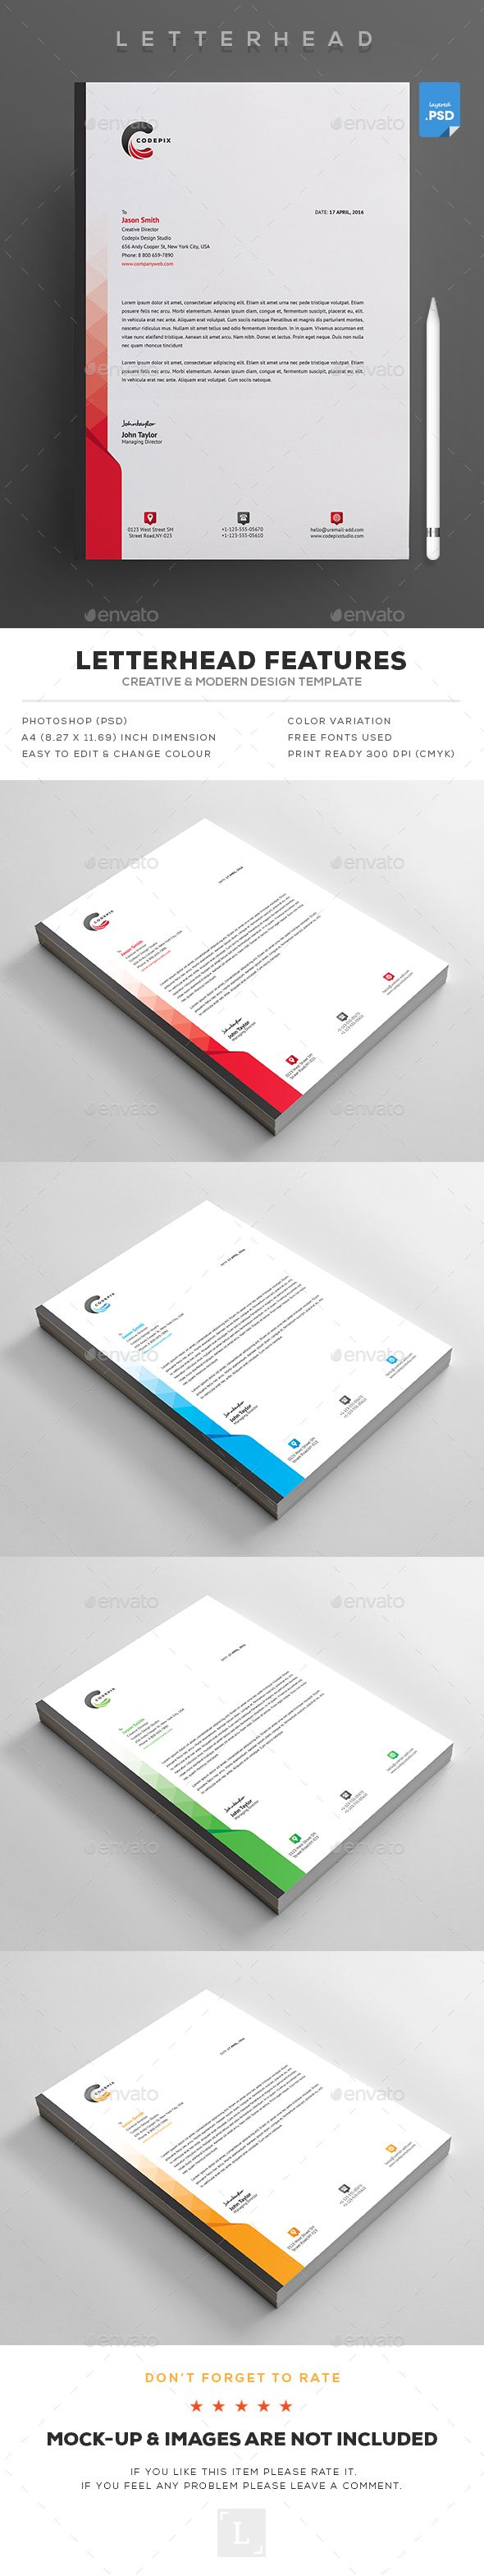 Best 25 Professional Letterhead Ideas On Pinterest Letterhead